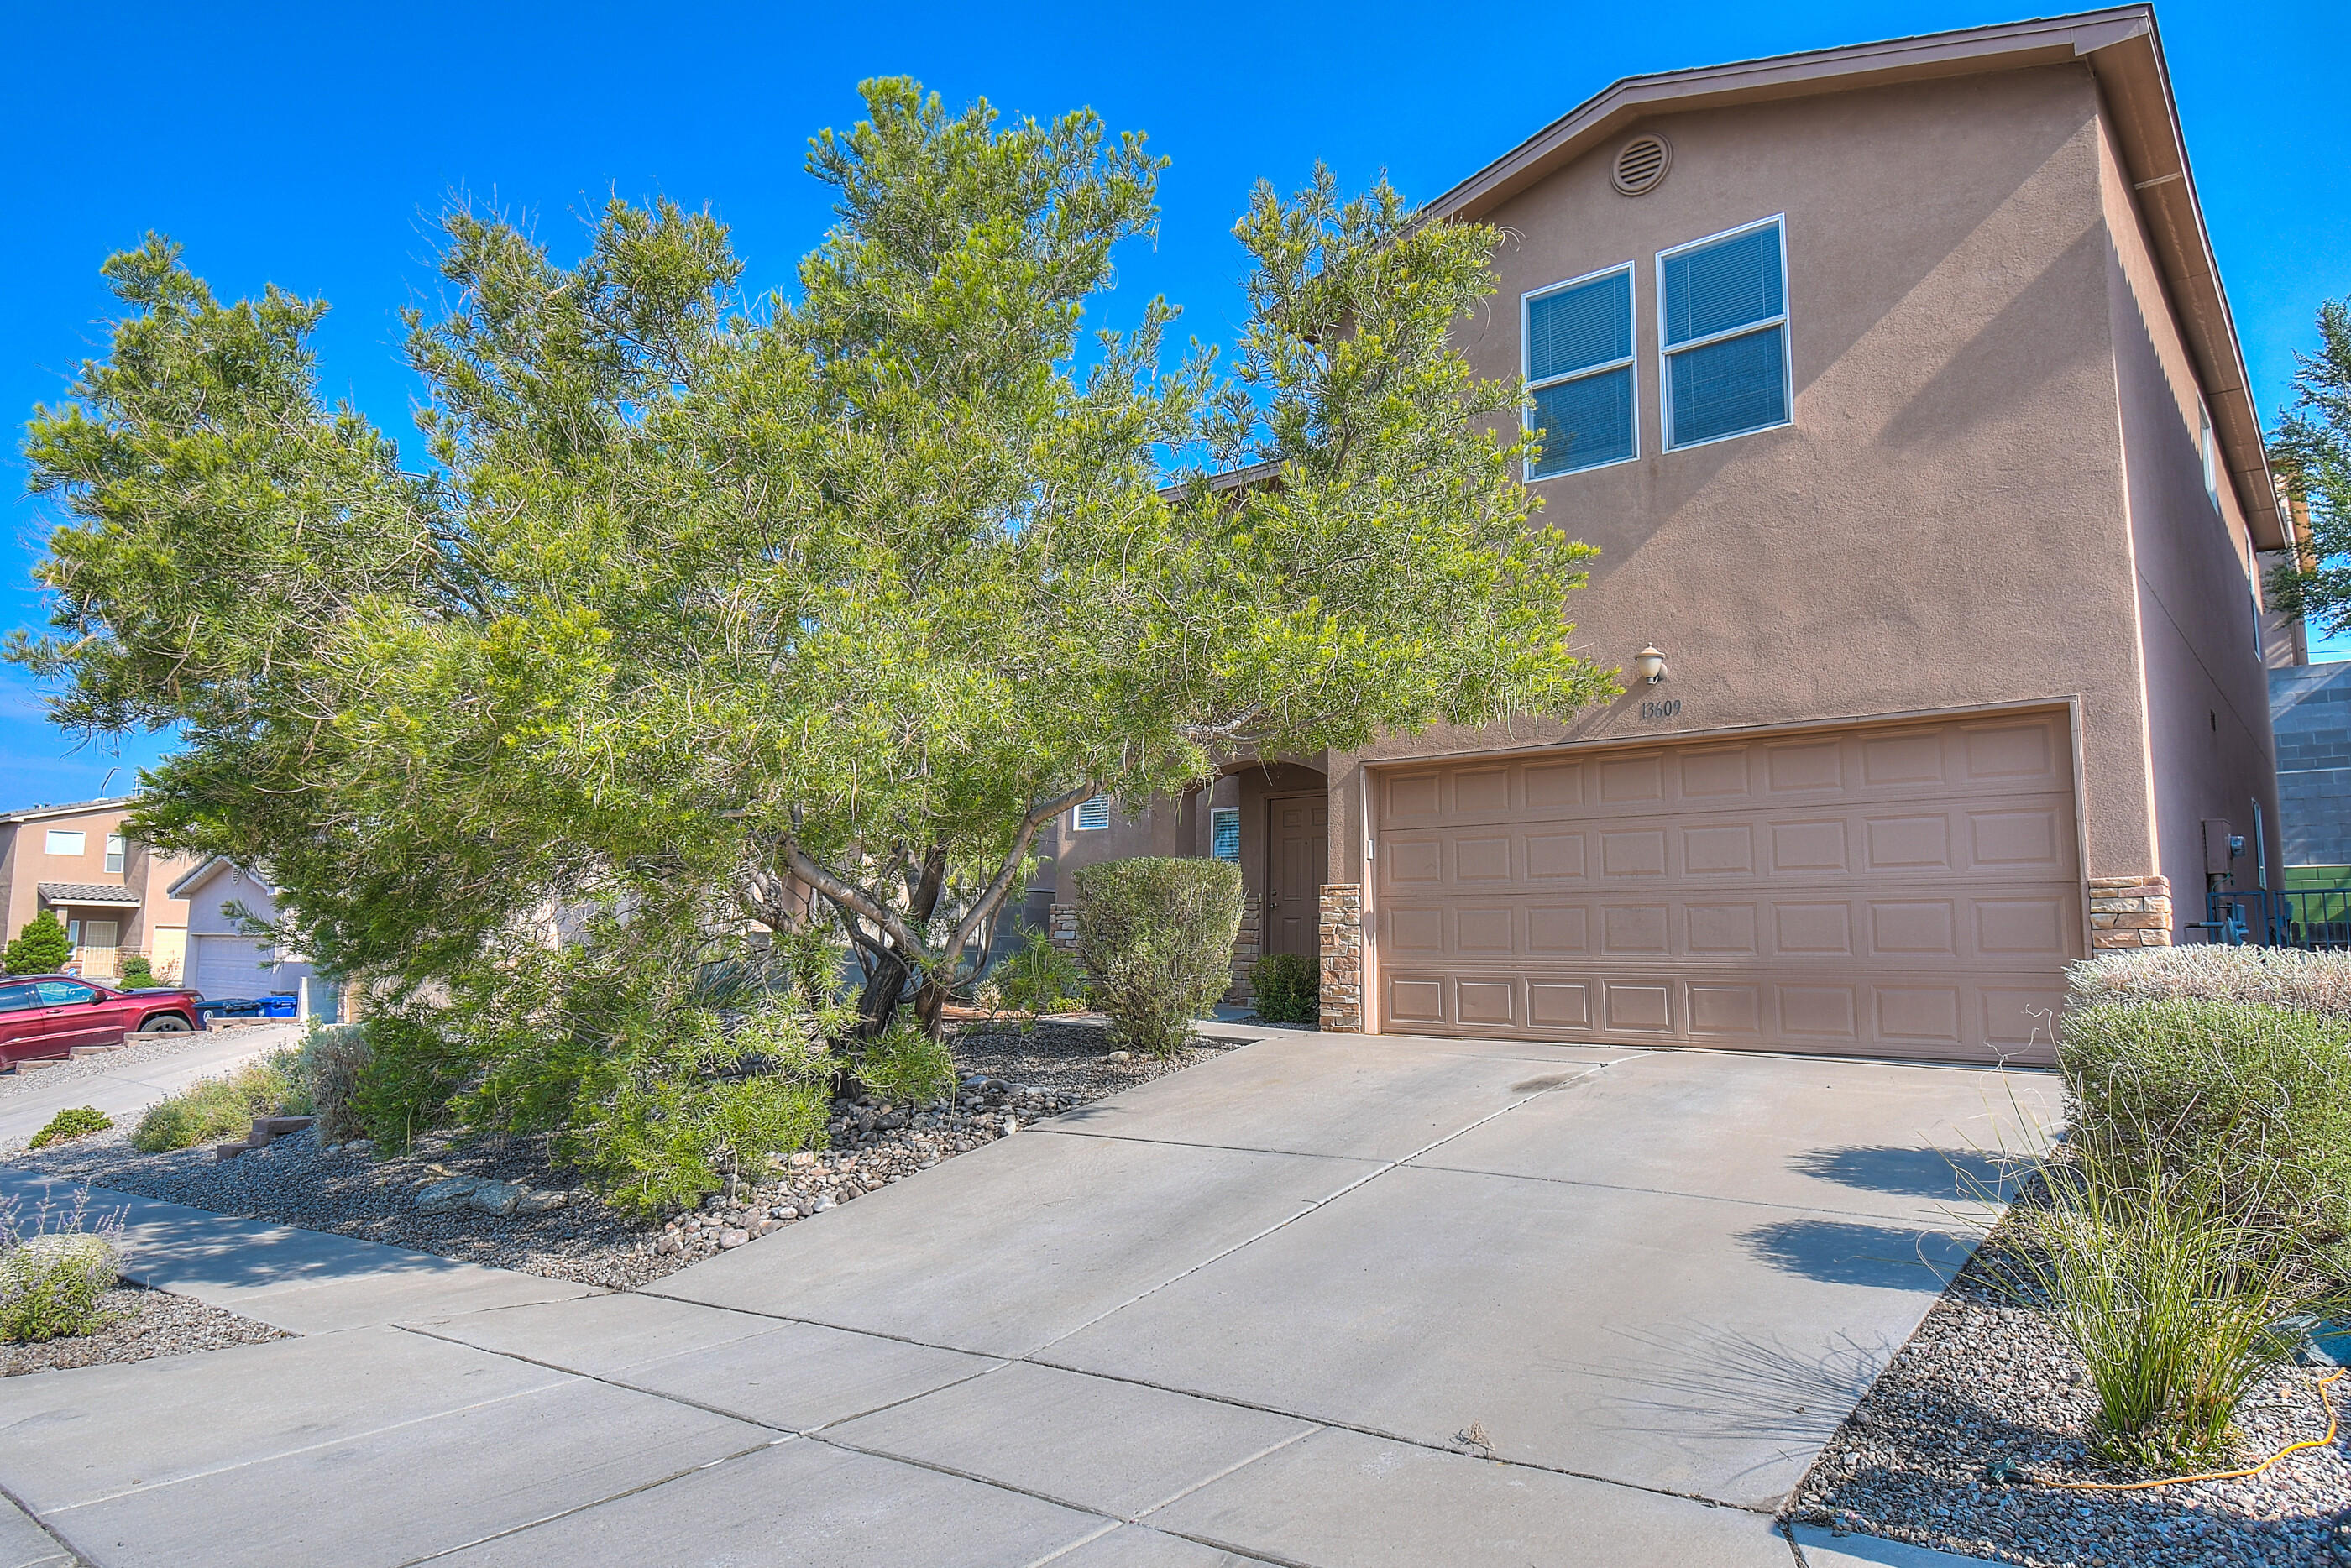 13609 MOUNTAIN WEST Court SE Property Photo - Albuquerque, NM real estate listing